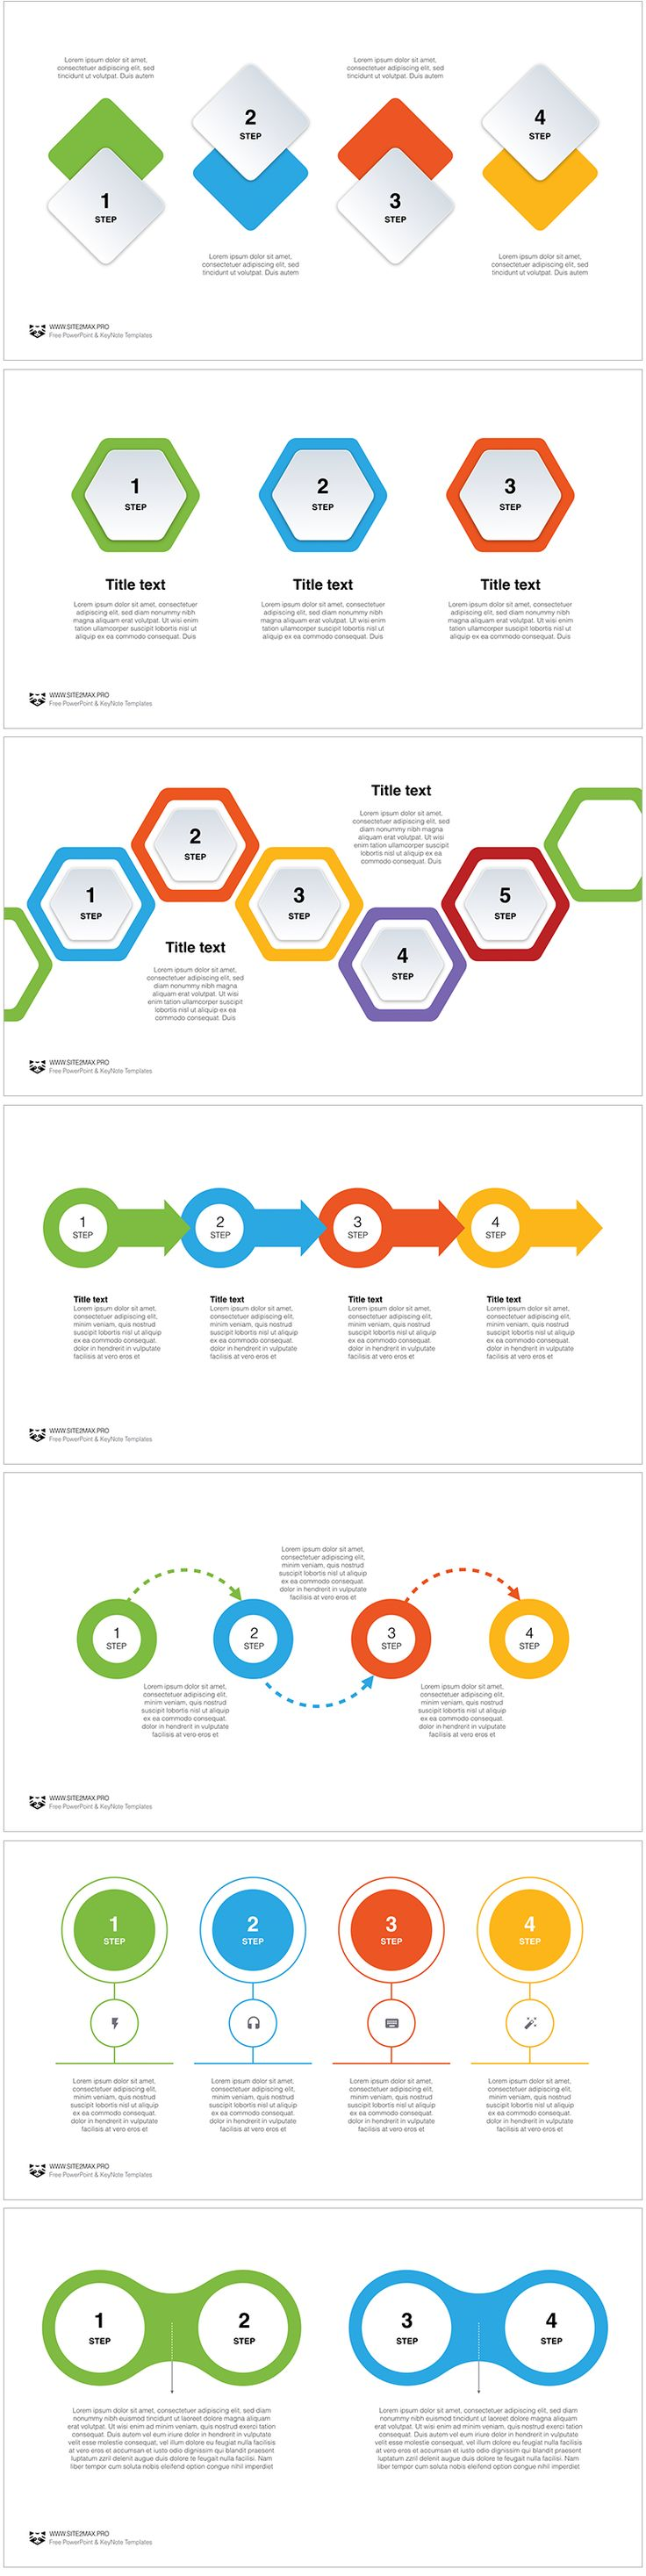 Download: http://site2max.pro/step-step-free-keynote-template/ Step by step free Keynote template #step #infographic #keynote #key #template #timeline